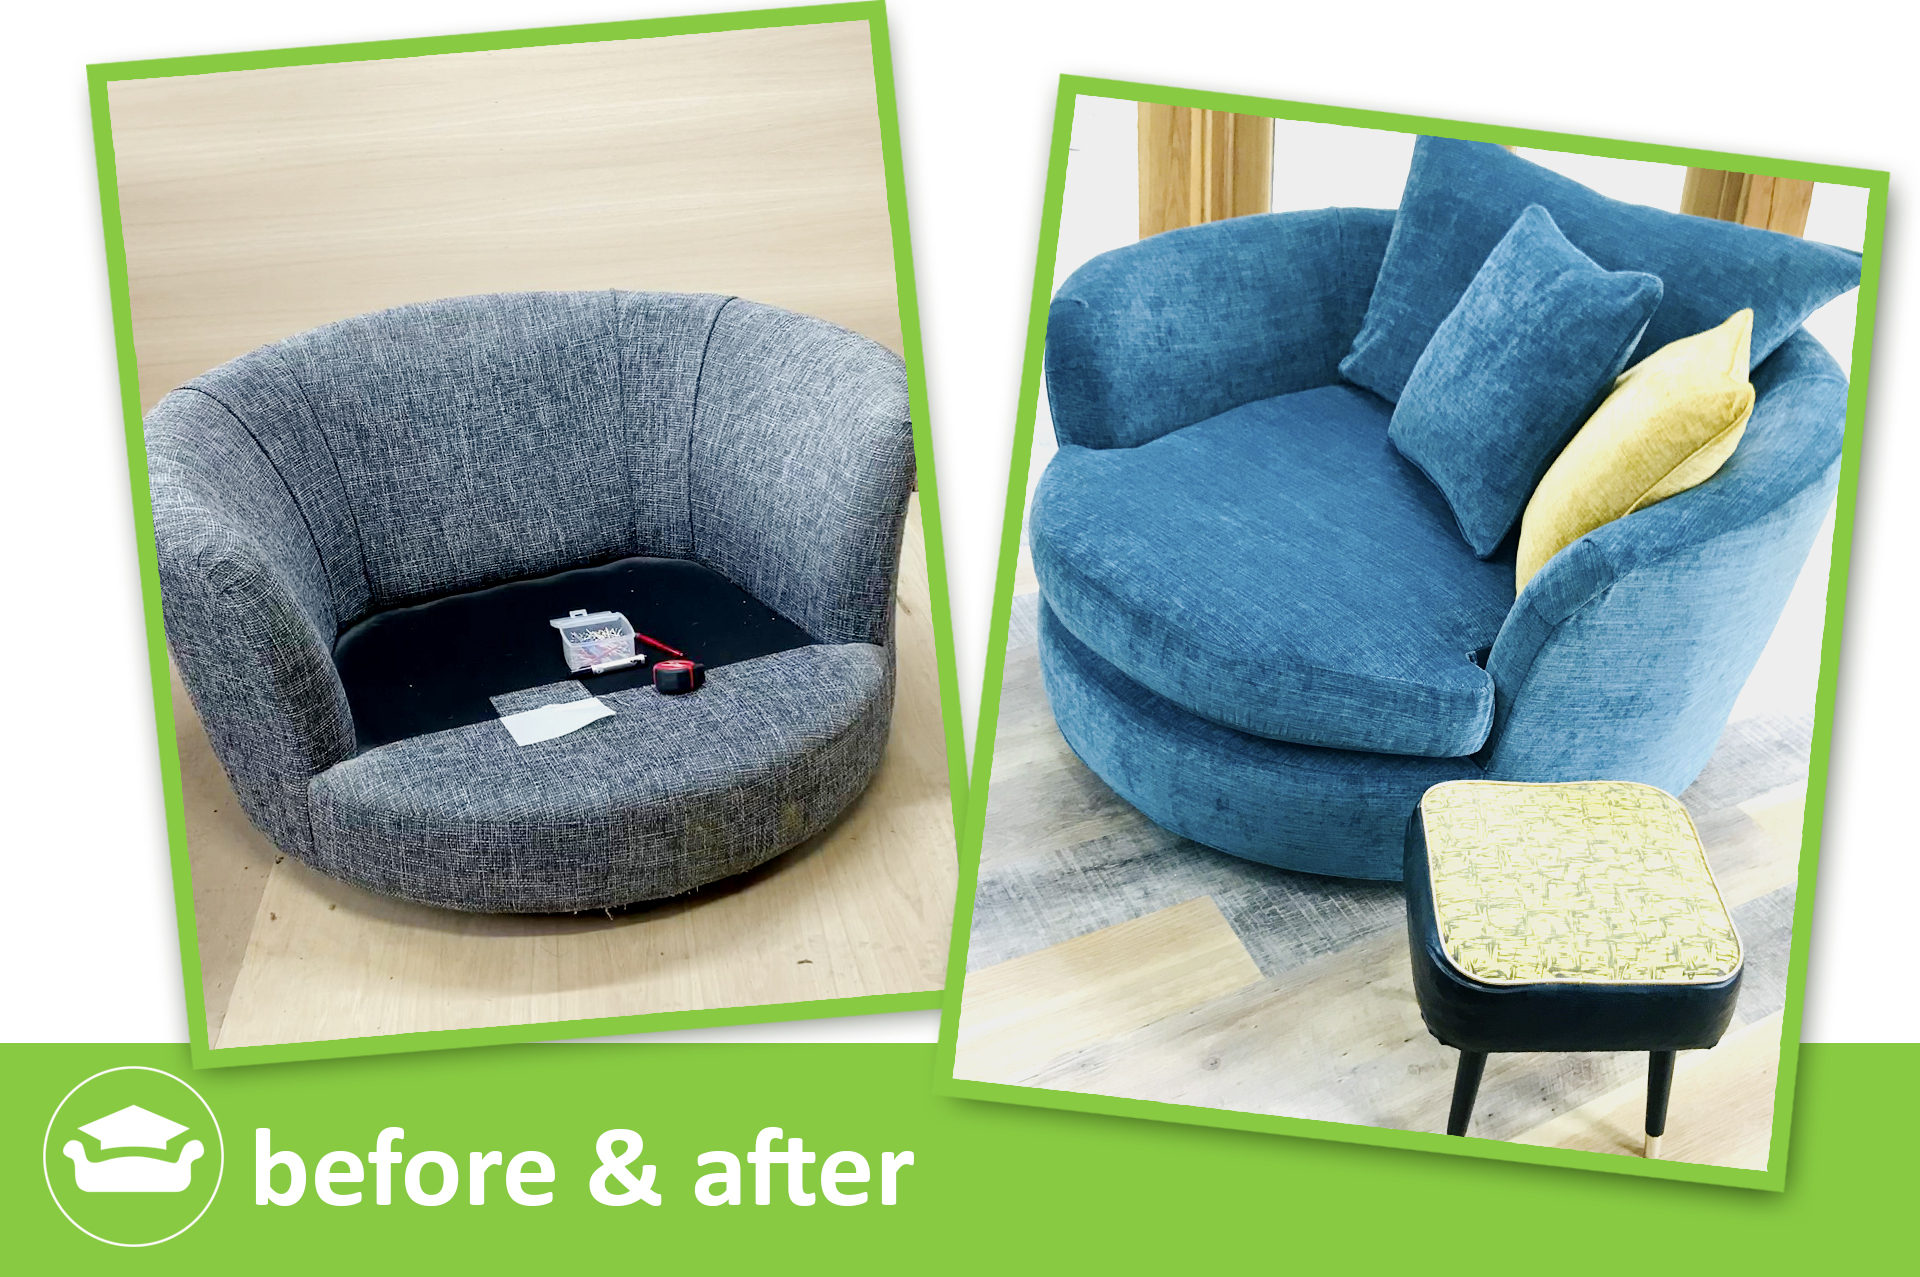 learn to make a loose cover for a curved chair or tub chair